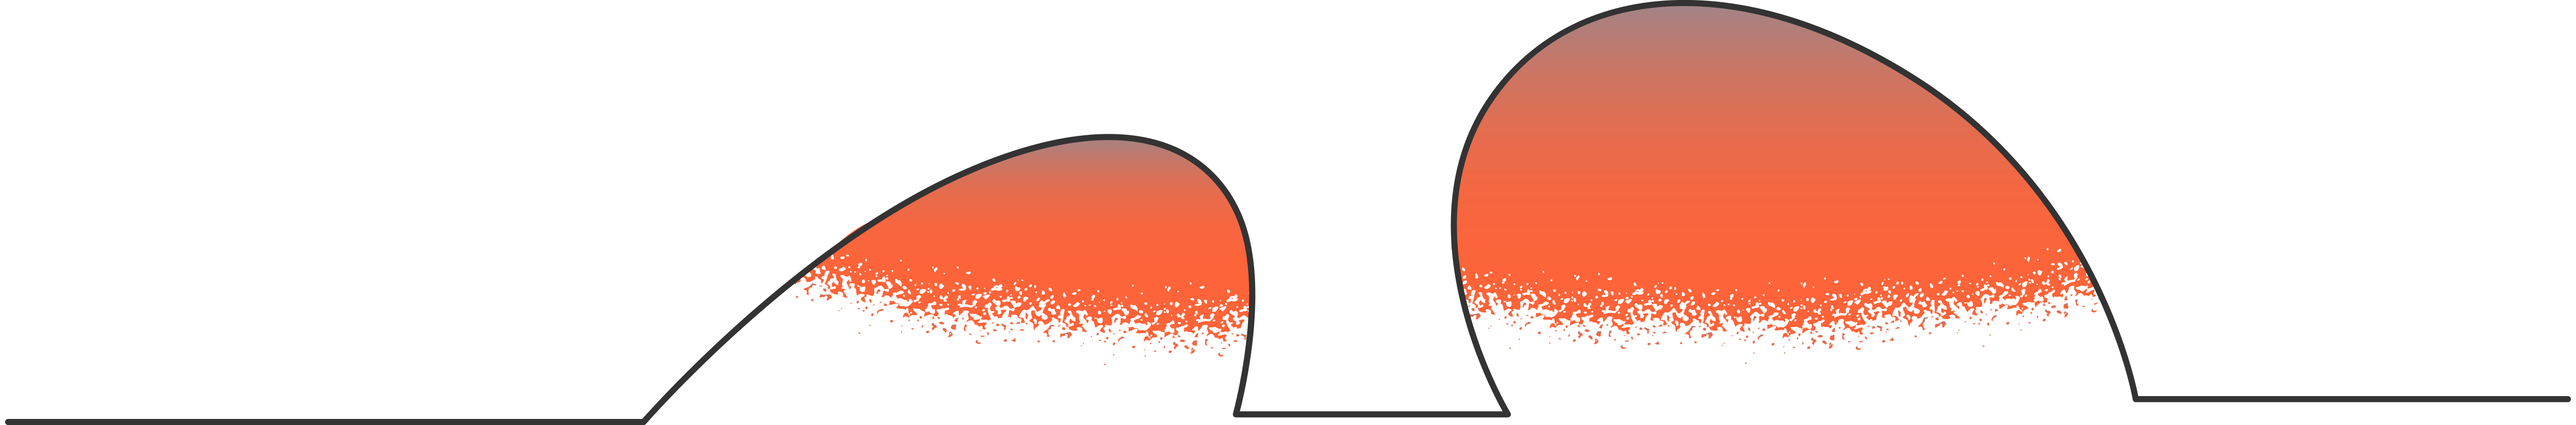 downloading  two pimples Clipart illustration in PNG, SVG